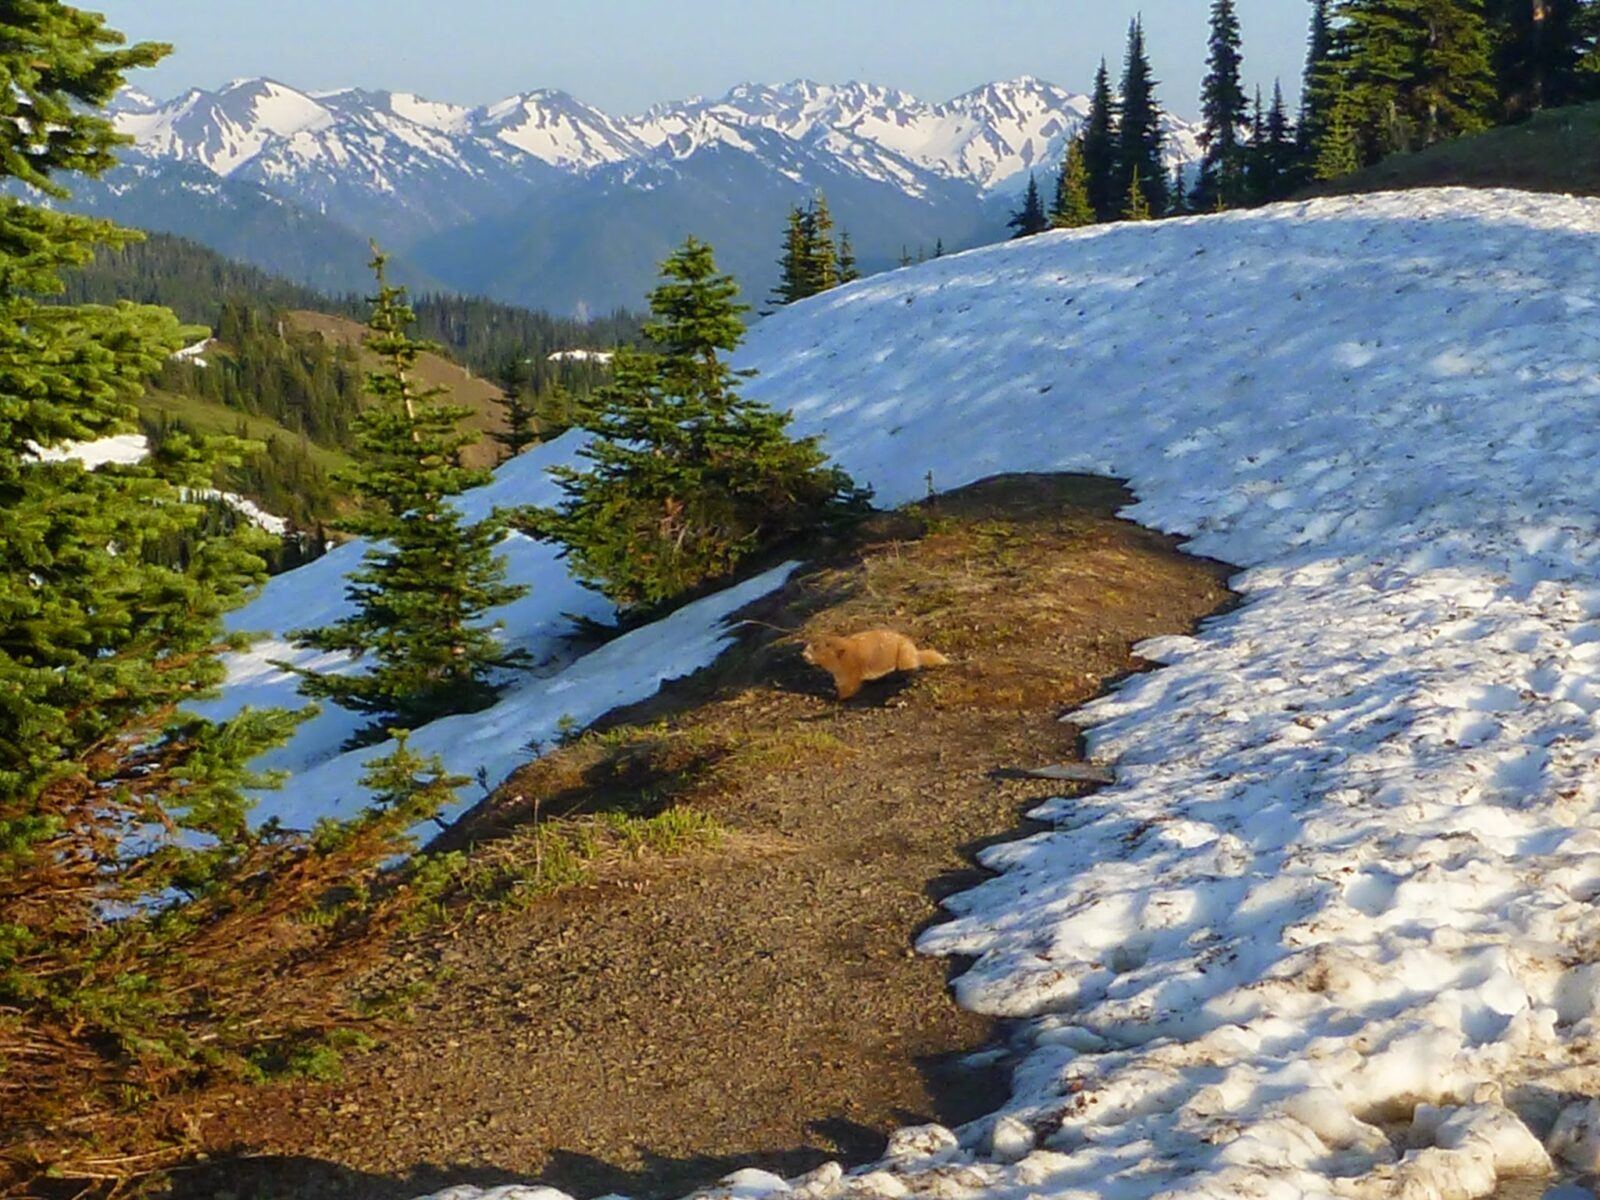 A light brown Olympic marmot next to a melting snowbank among the trees at Hurricane Ridge in Olympic National Park. There are high snow covered mountains in the distance